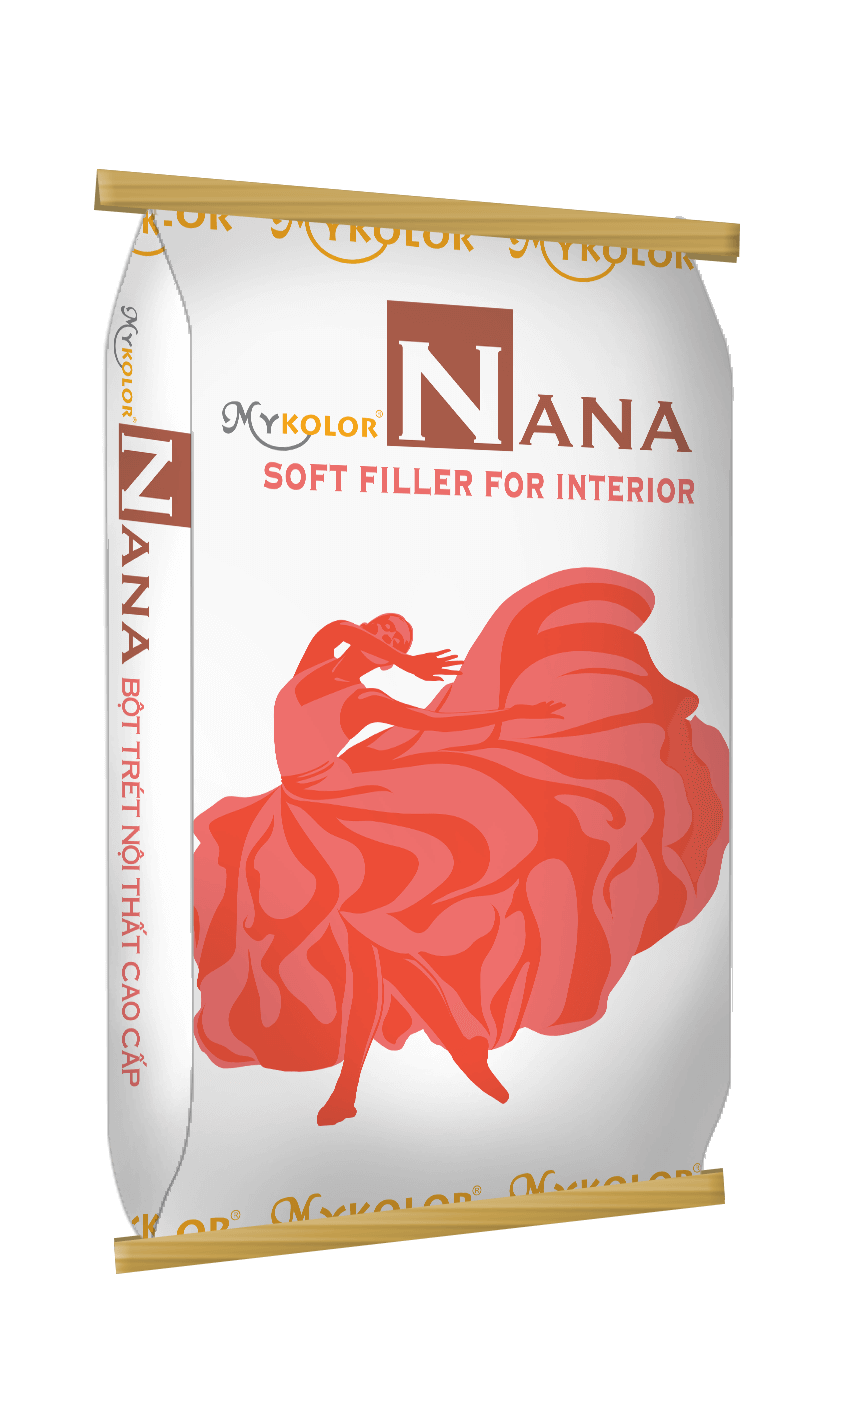 MYKOLOR NANA | SOFT FILLER | FOR INTERIOR